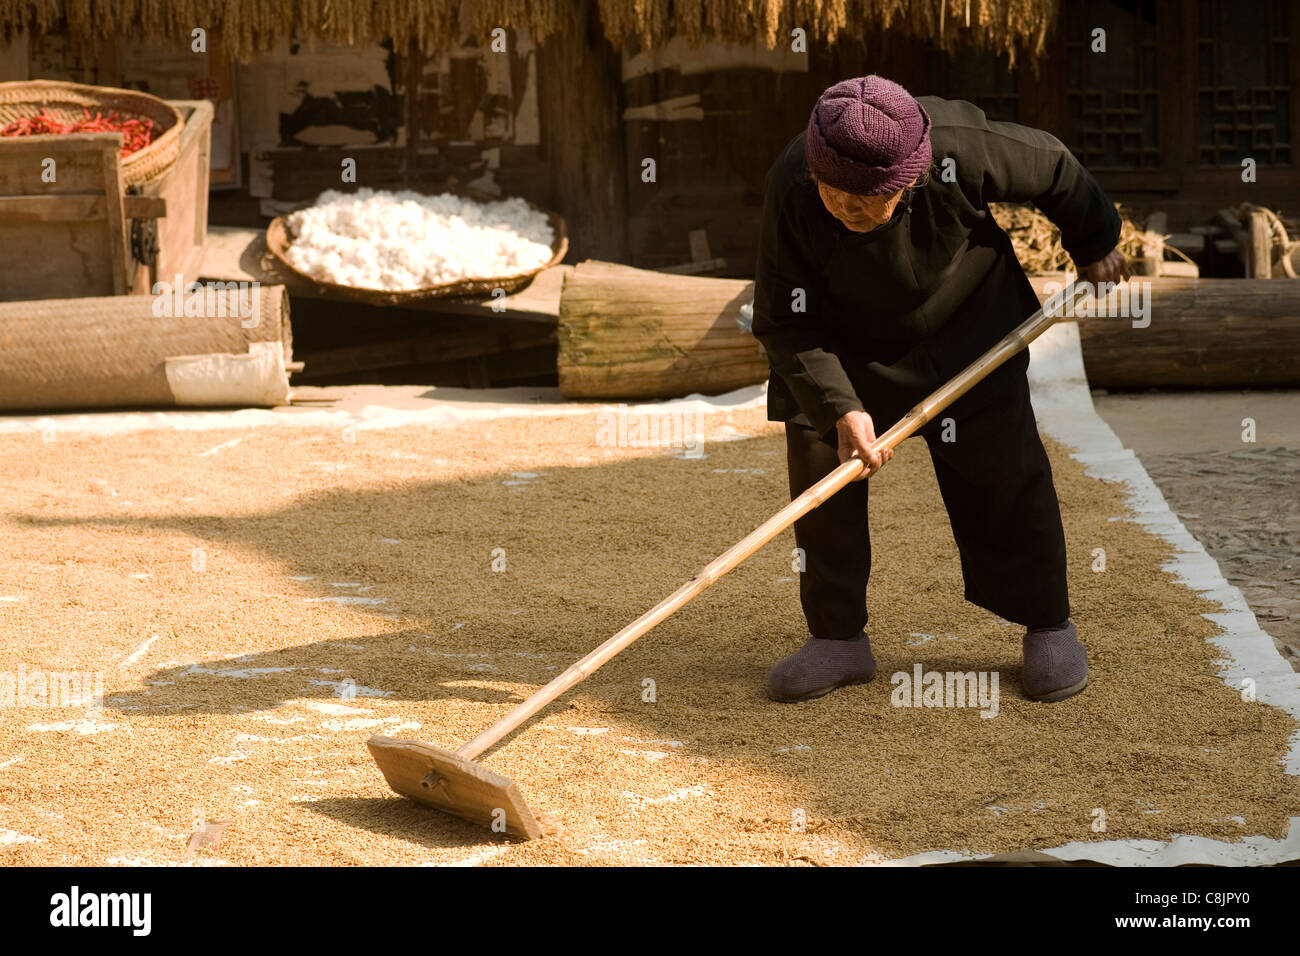 drying rice grains, no retirement, Chinese, people, woman, women, village, countryside Stock Photo